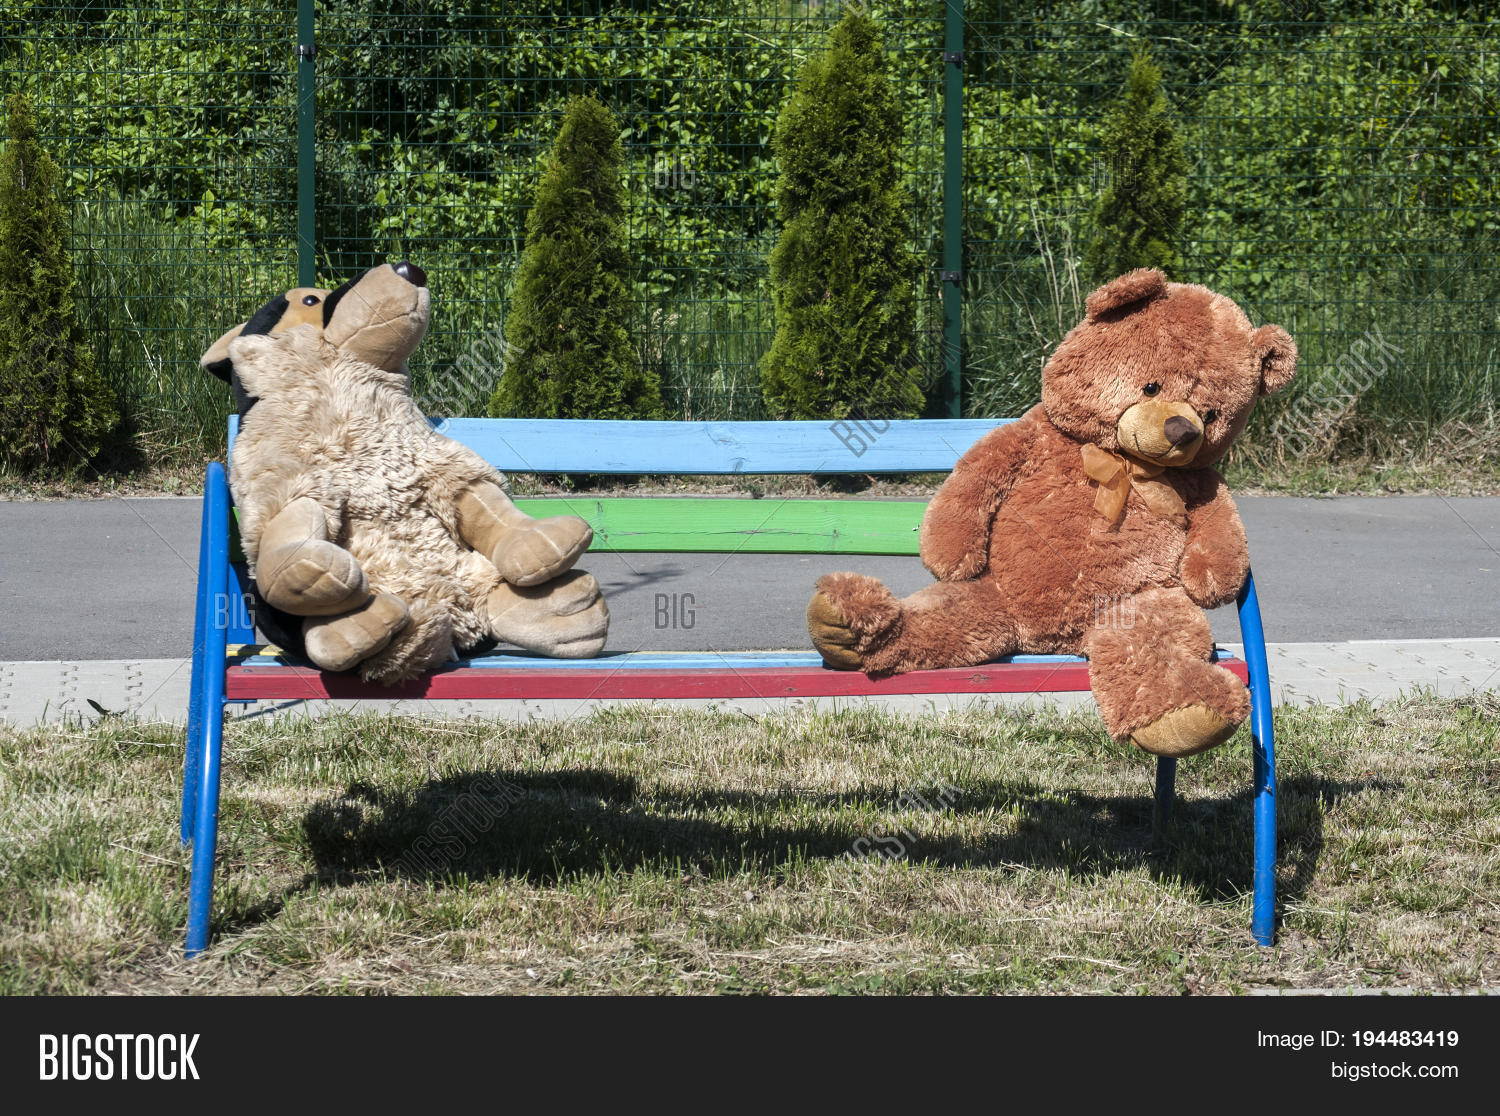 animal,bear,bench,child,childhood,fluffy,garden,kinder,kindergarten,plush,plushy,stuffed,teddy,toy